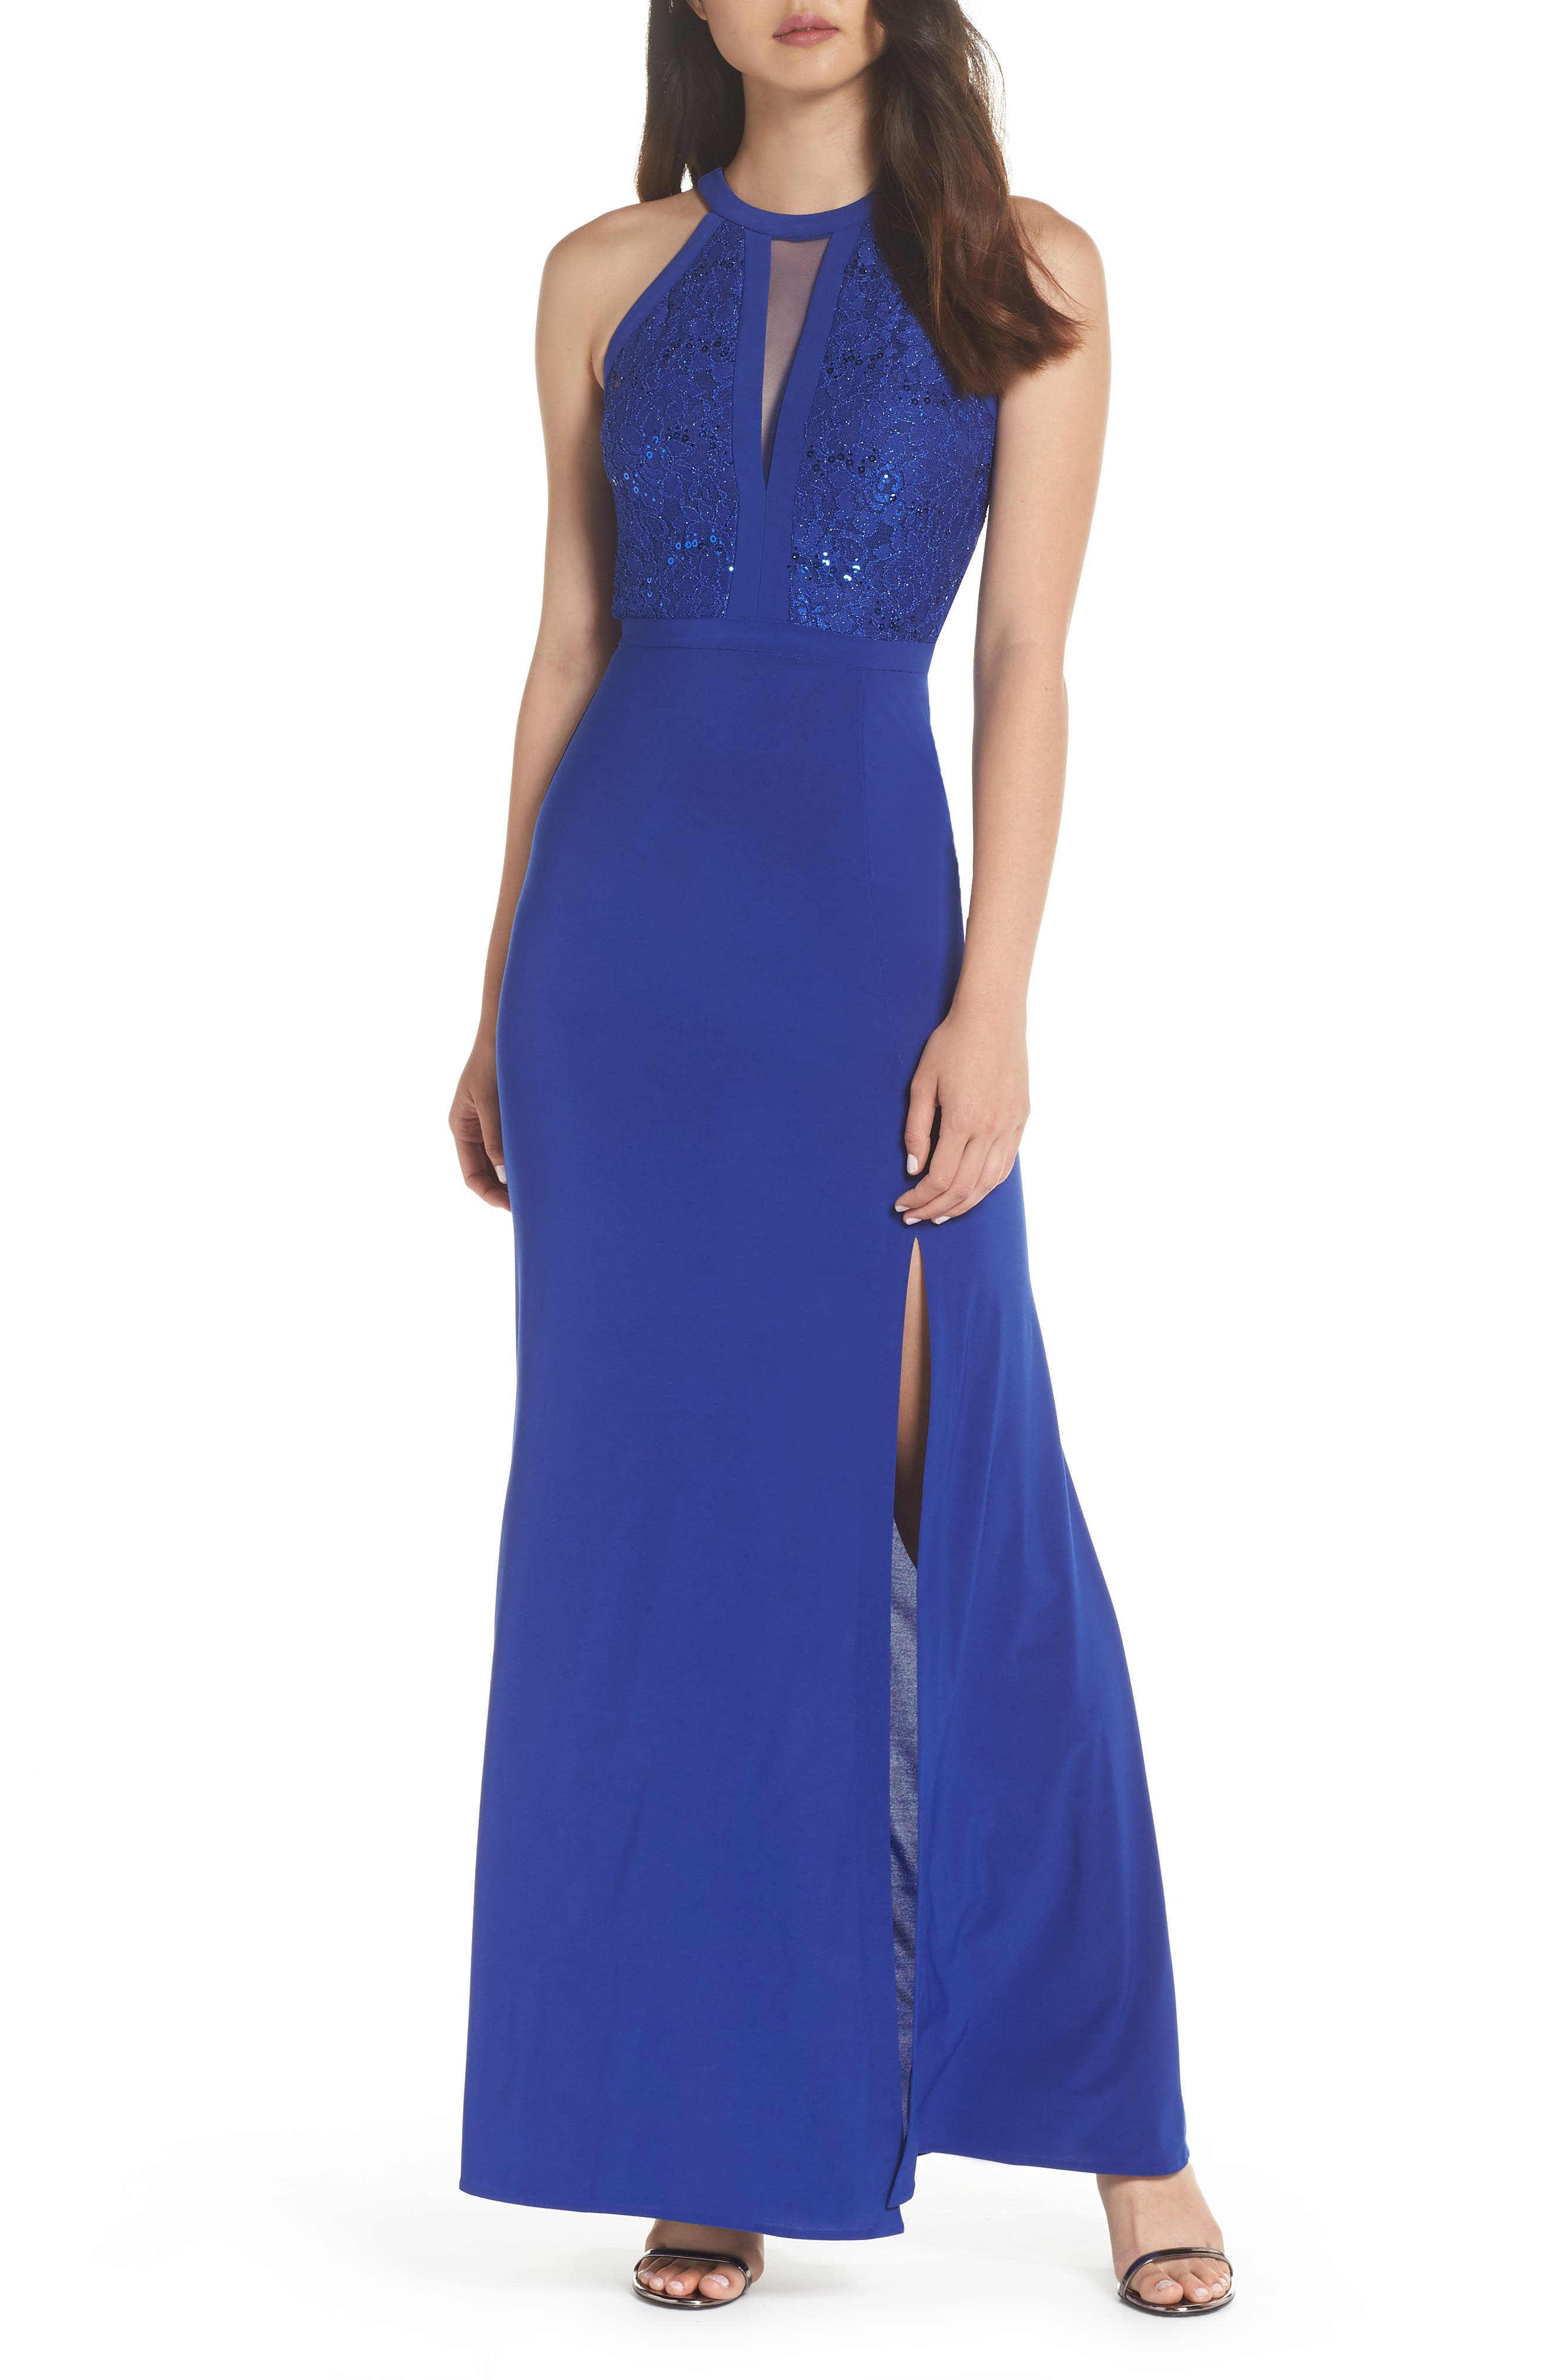 Morgan & Co. Lace & Jersey Gown, /6 - Blue